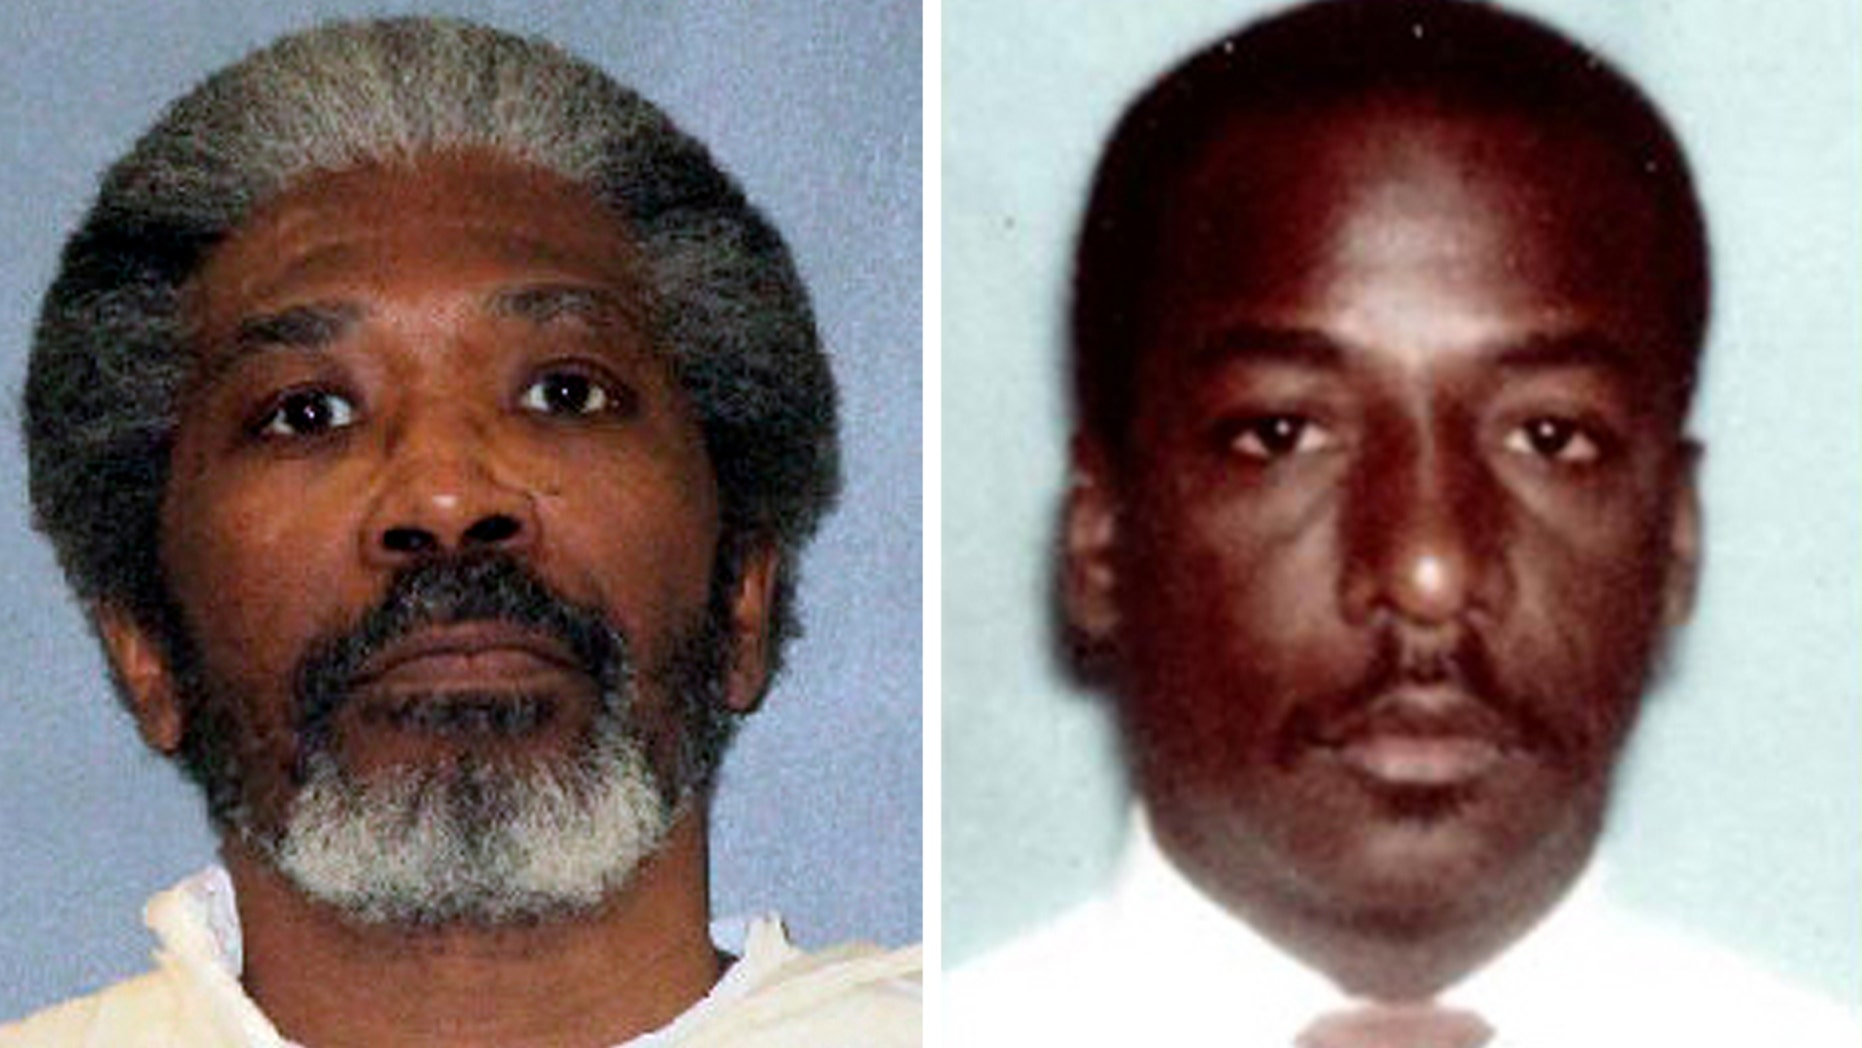 Robert Jennings, 61, left, was executed on Wednesday, January 30, 2019, to kill the 24-year-old Houston police officer Elston Howard more than three decades ago.